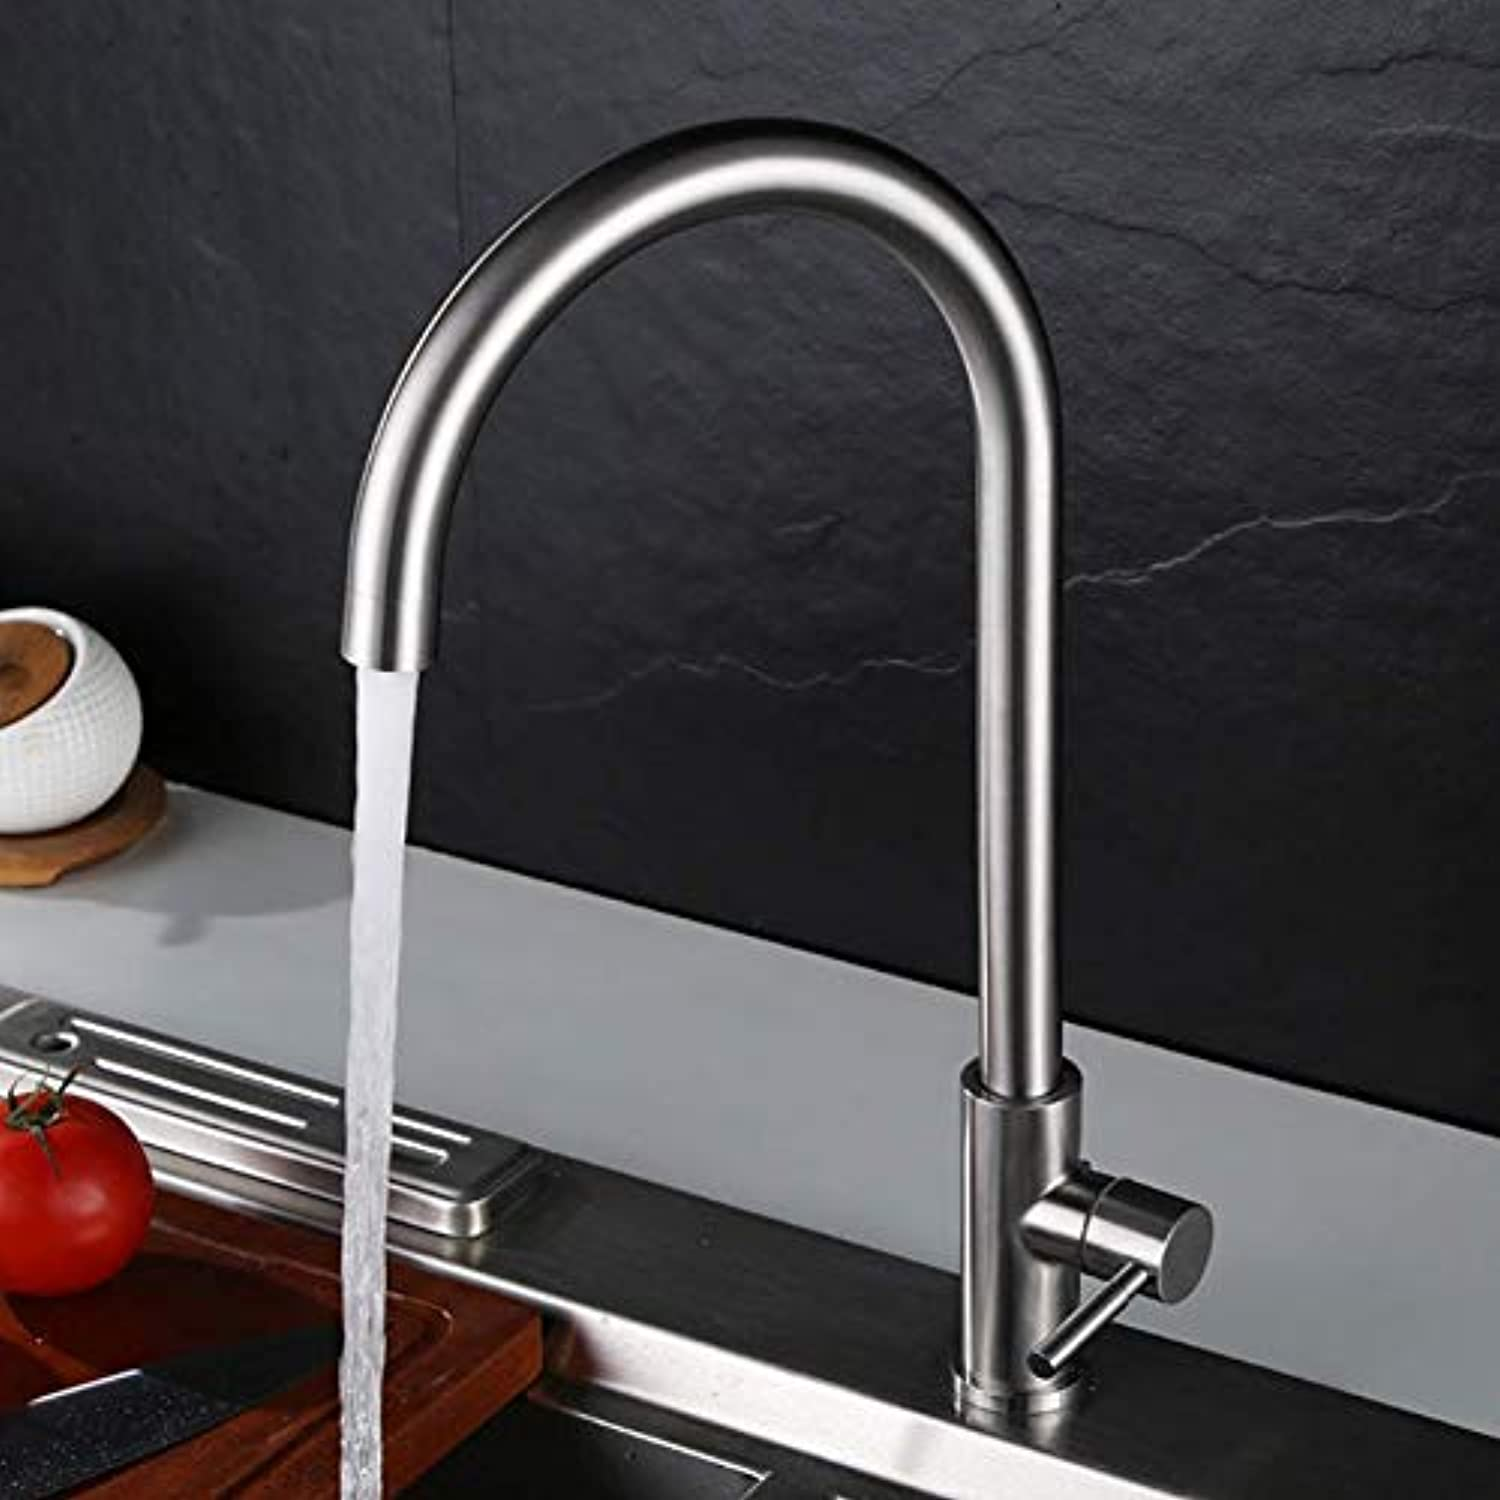 Kitchen Faucet redating Kitchen Sink Faucet Stainless Steel Kitchen Single Cold Faucet,